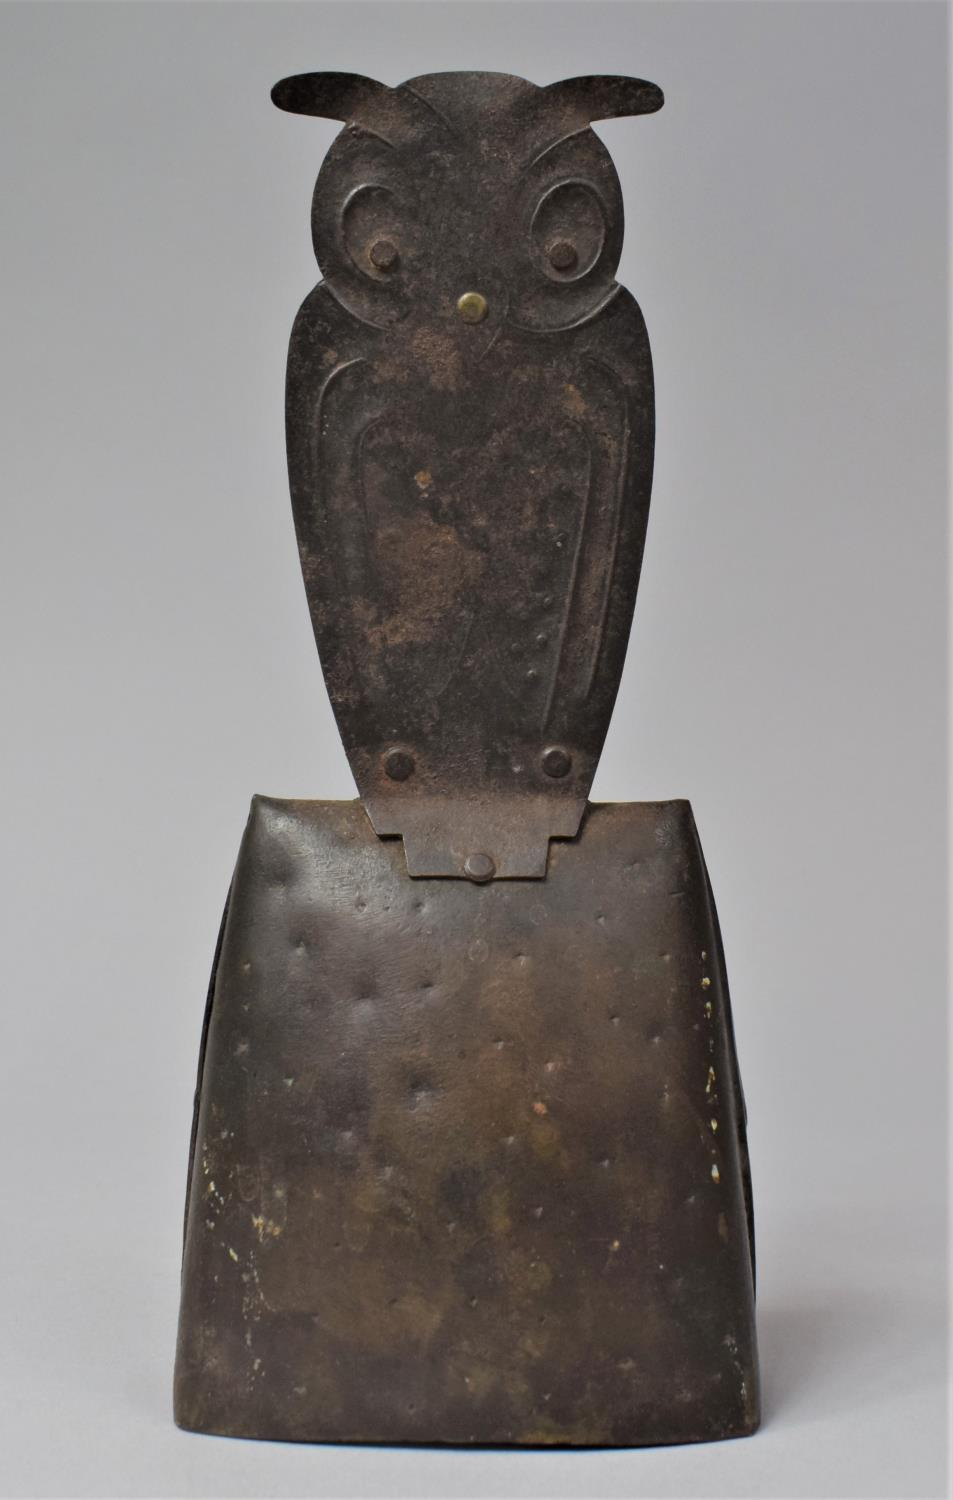 A German Arts and Crafts Handbell, the Handle in the Form of a Long Eared Owl, In Mixed Metal, - Image 4 of 6